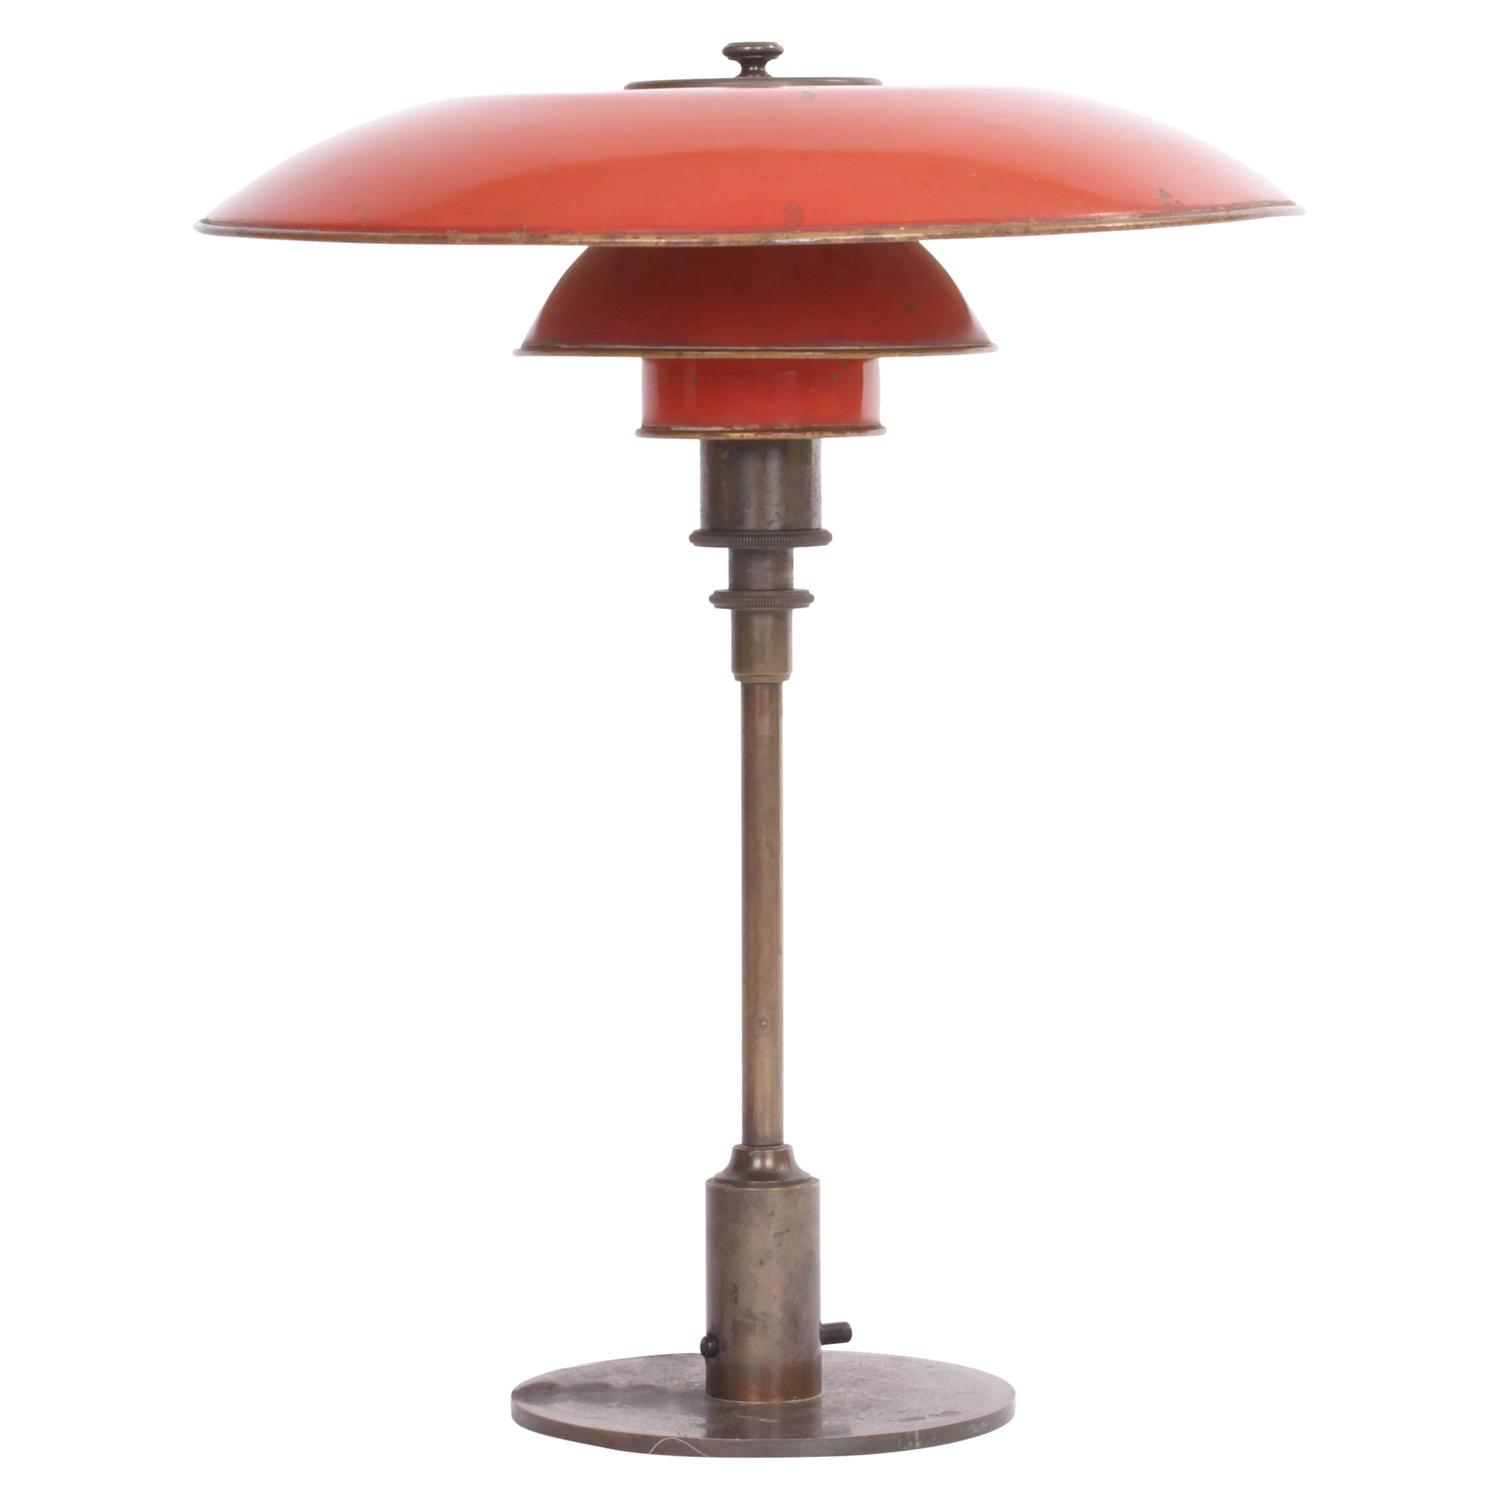 poul henningsen ph 3 5 2 desk lamp with red copper shades dated 1926 28 for sale at 1stdibs. Black Bedroom Furniture Sets. Home Design Ideas